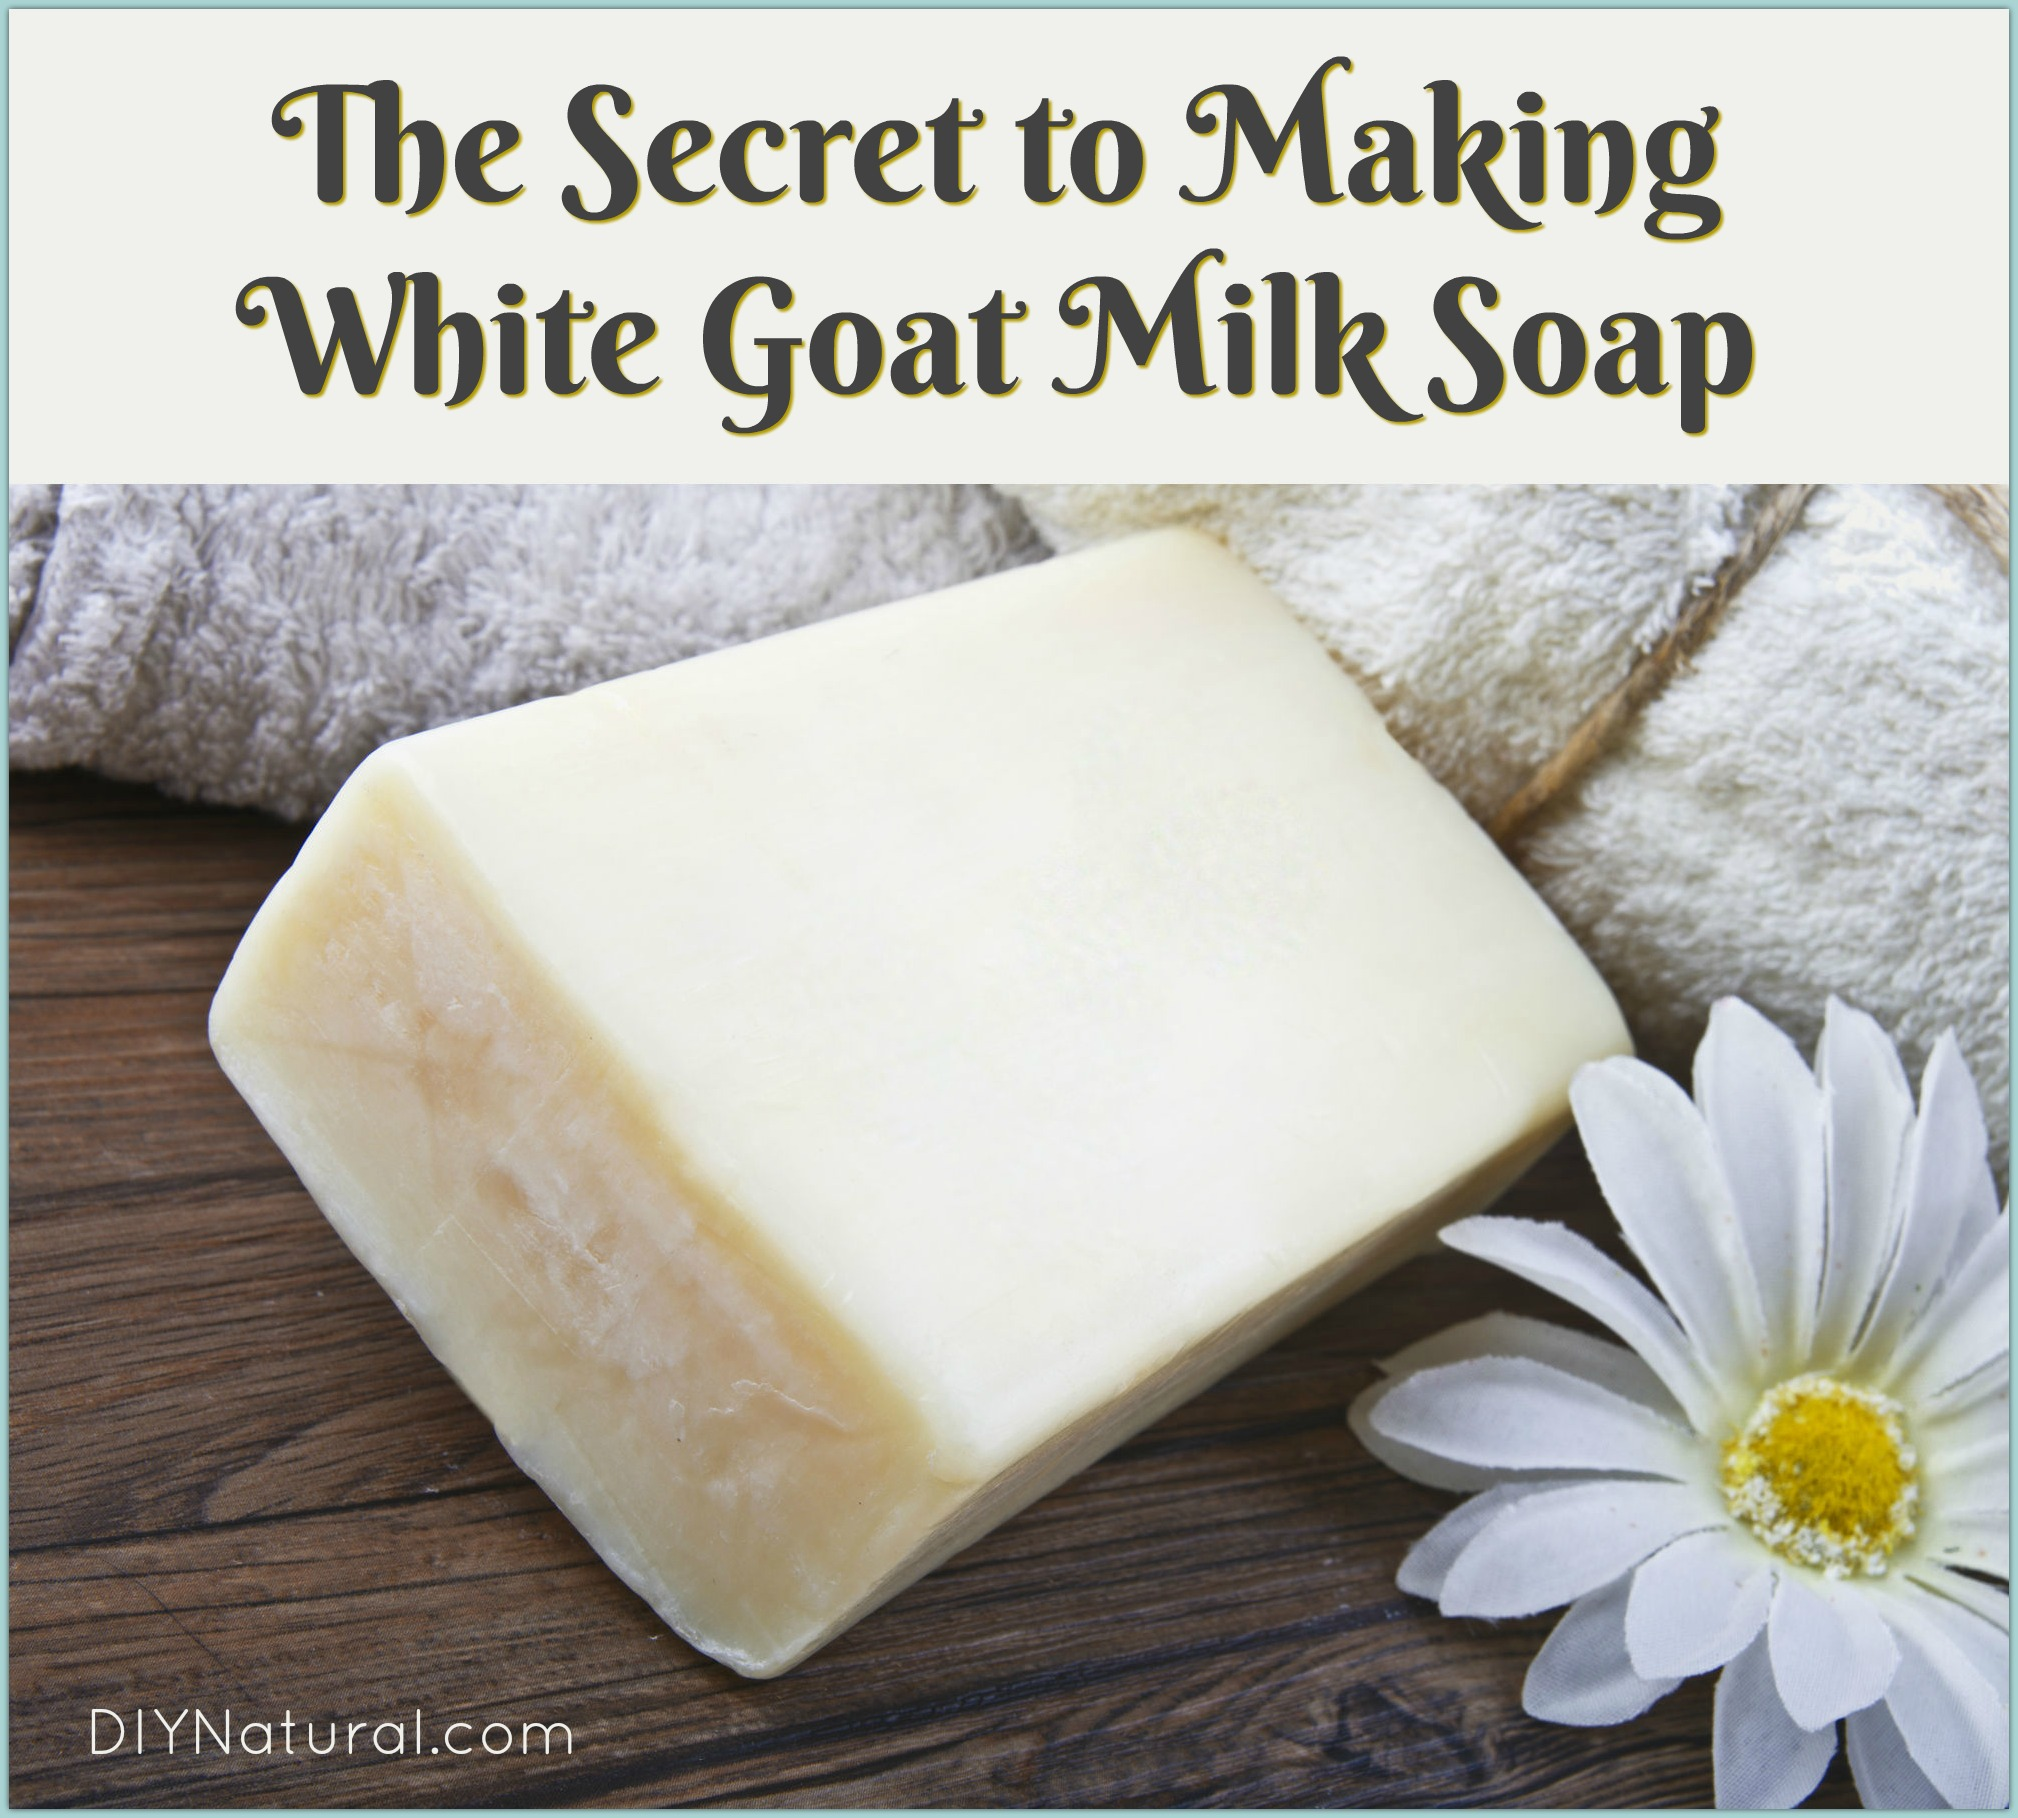 How to Make Goat Milk Soap recommendations